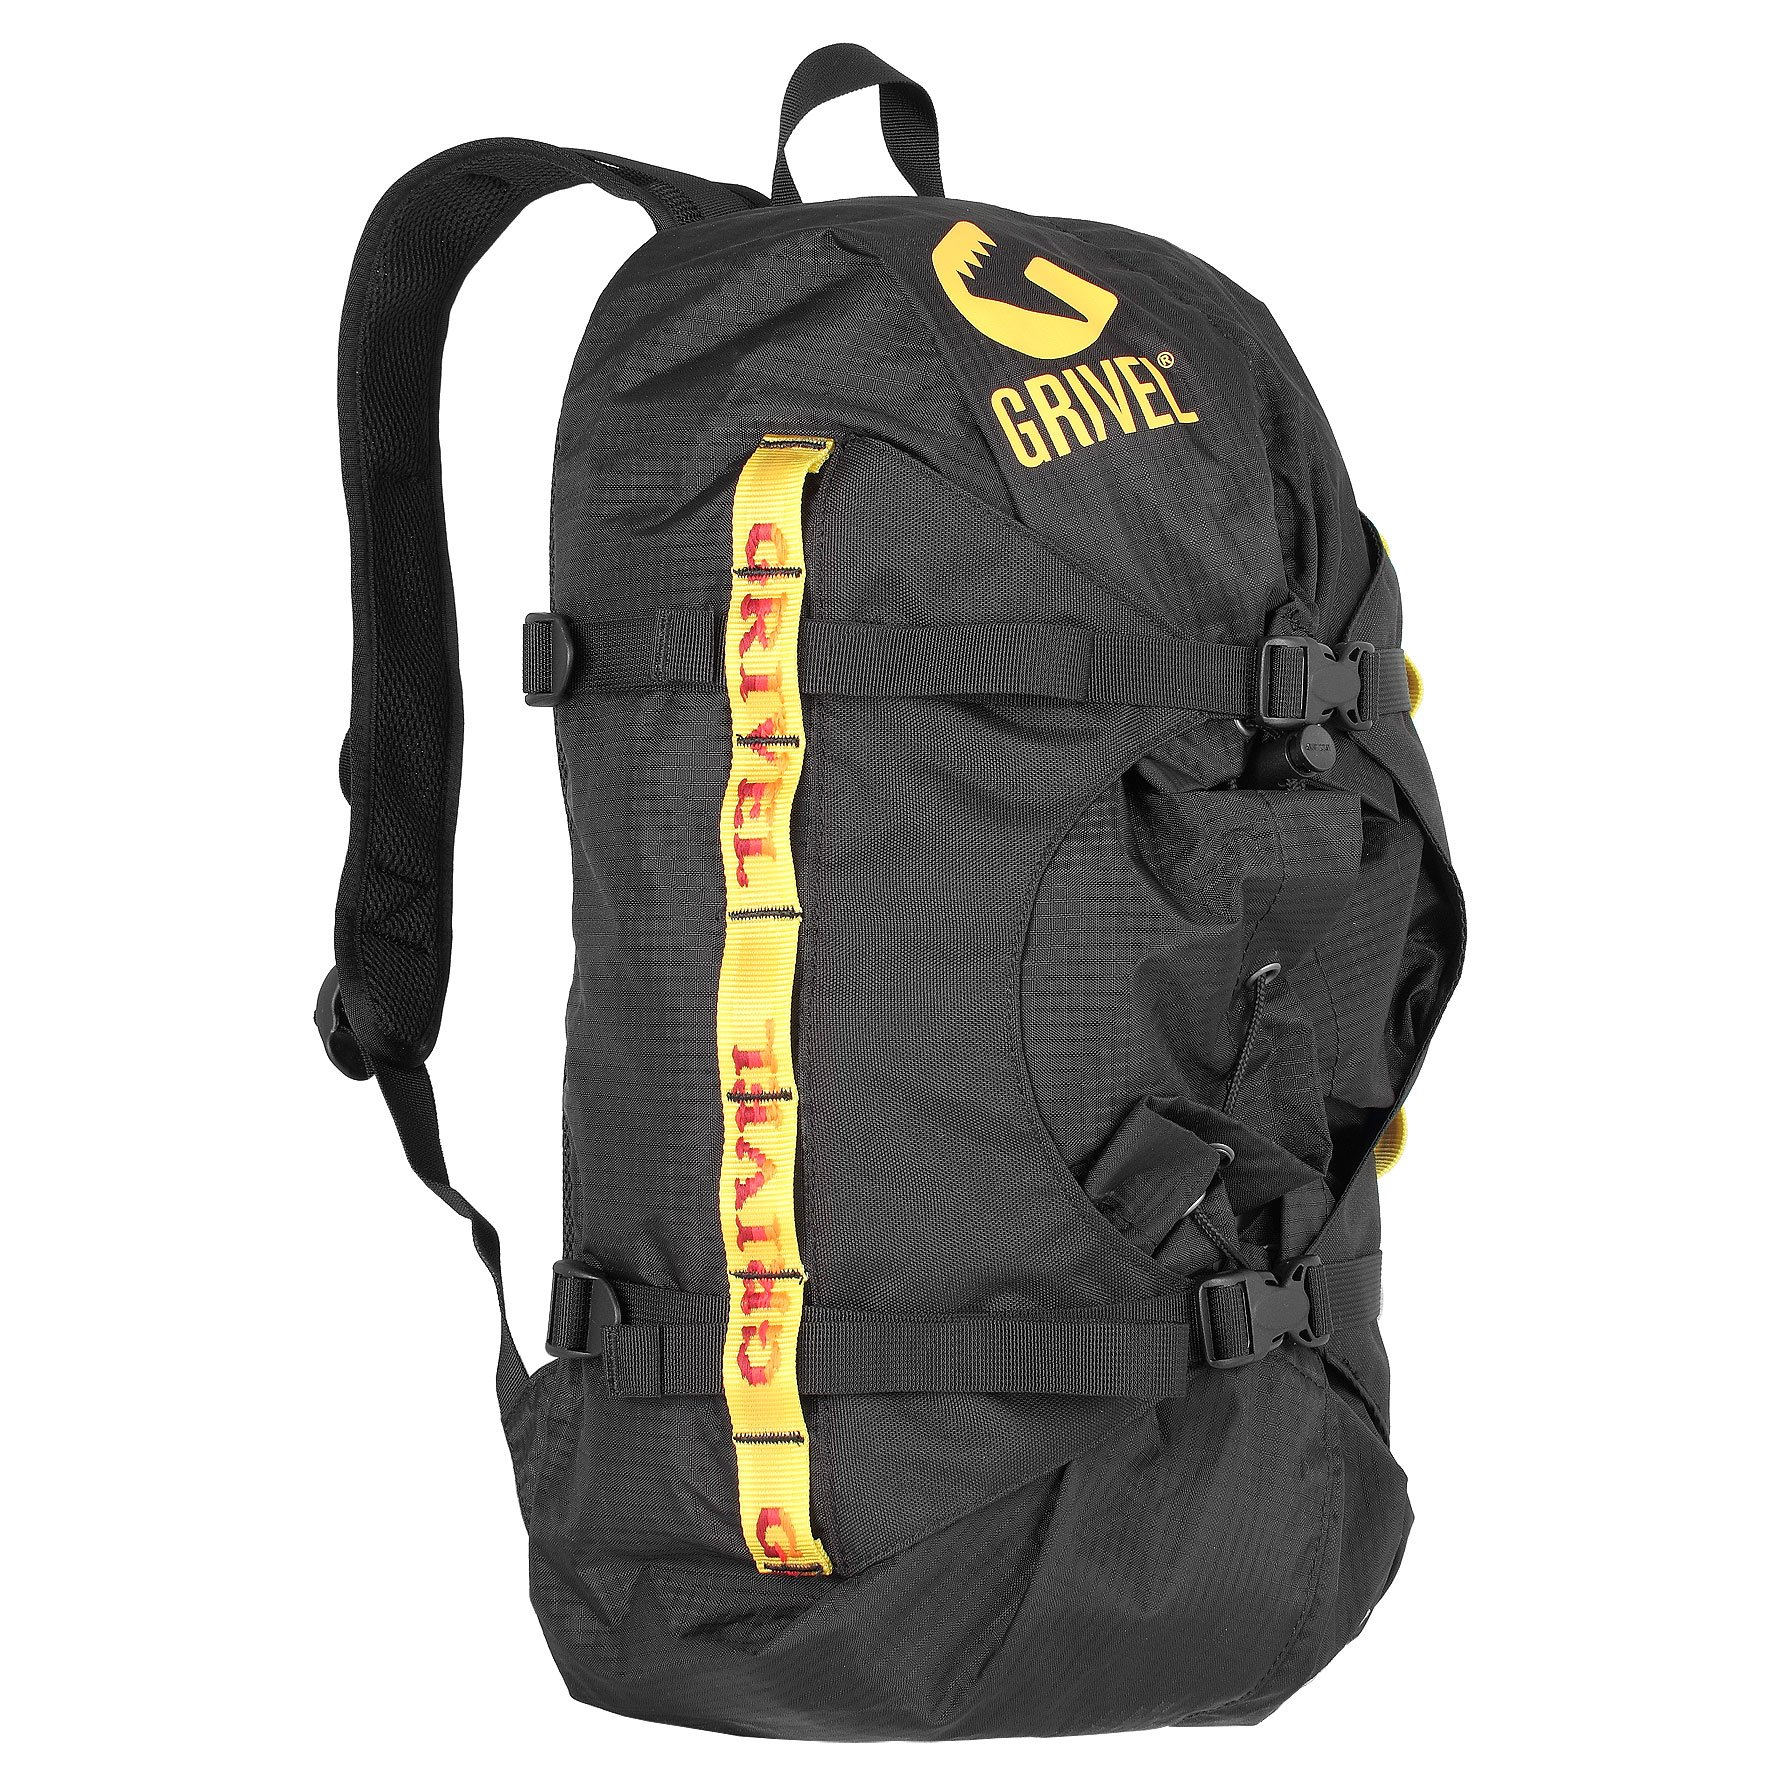 Grivel Rope Station Rope Bag One Color, One Size